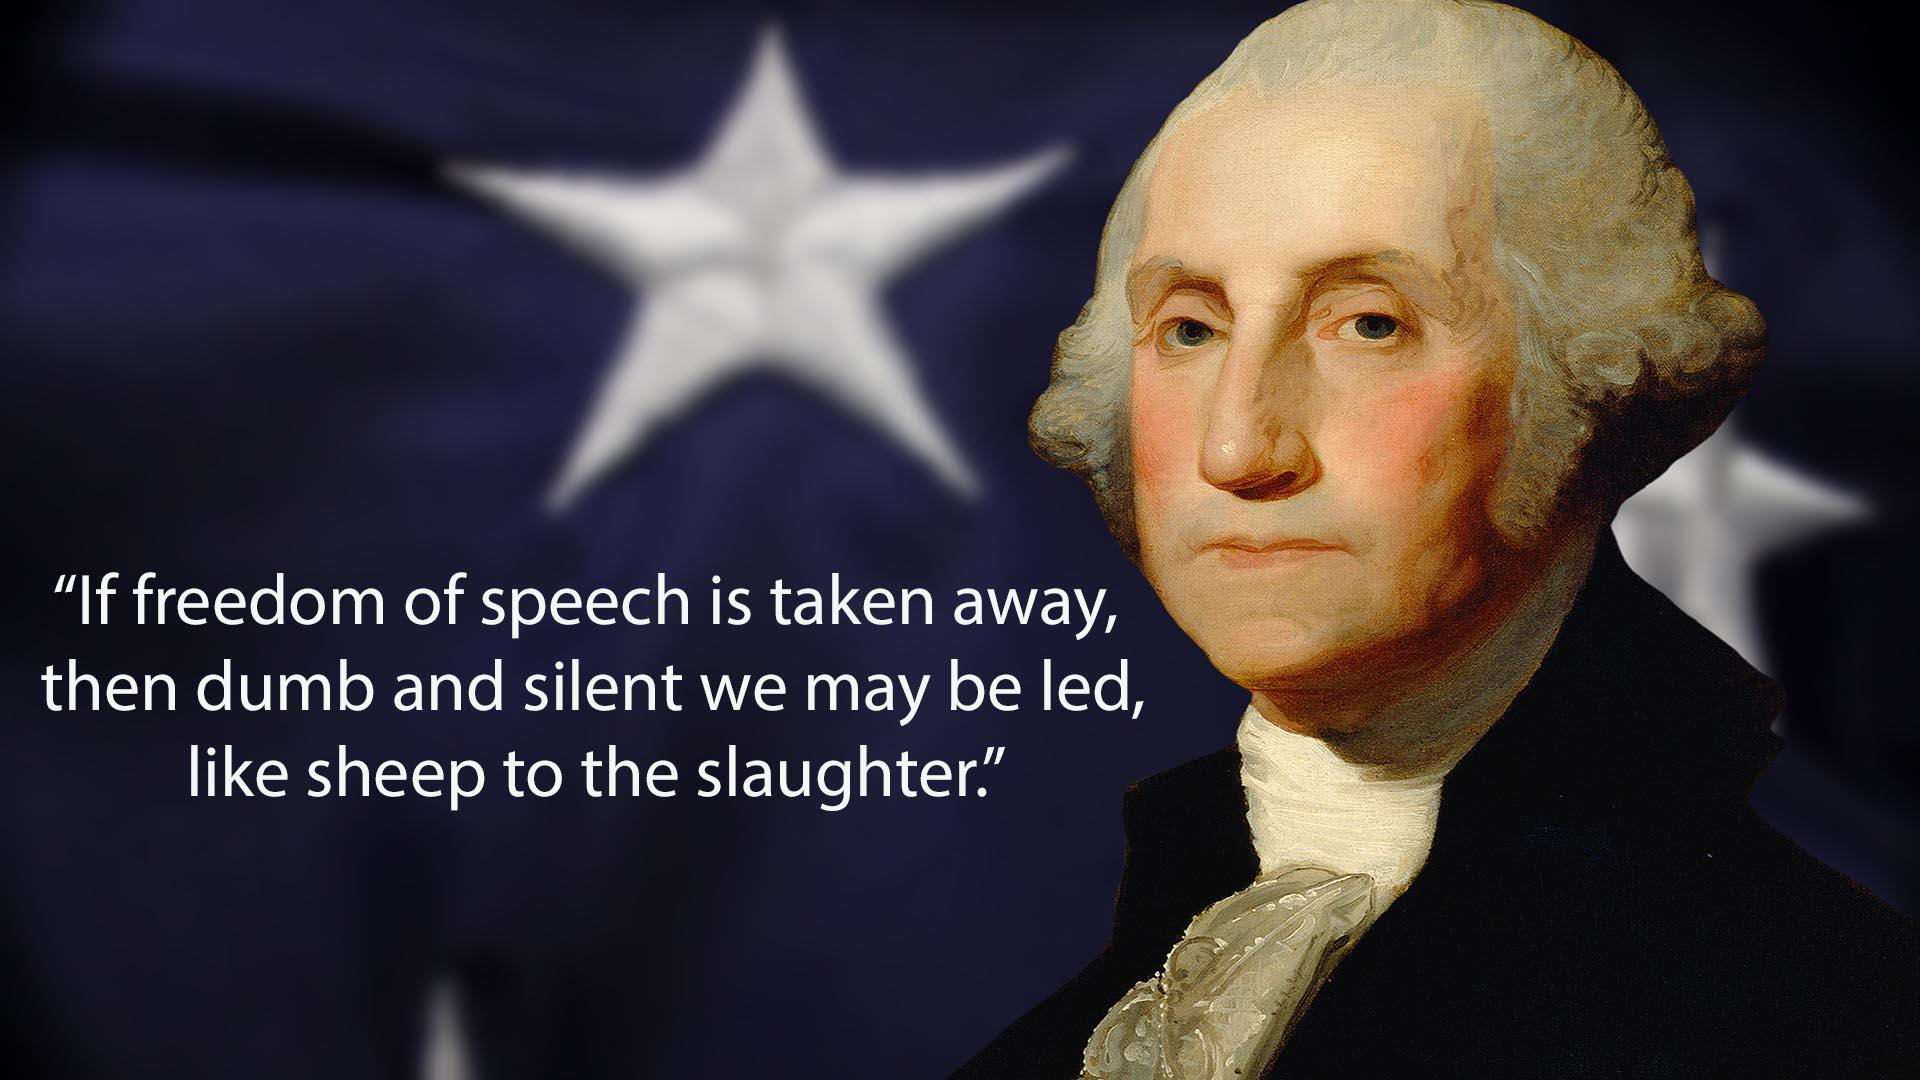 """If freedom of speech is taken away, then dumb and silent we may be led, like sheep to the slaughter."" ~ George Washington (1920×1080)"